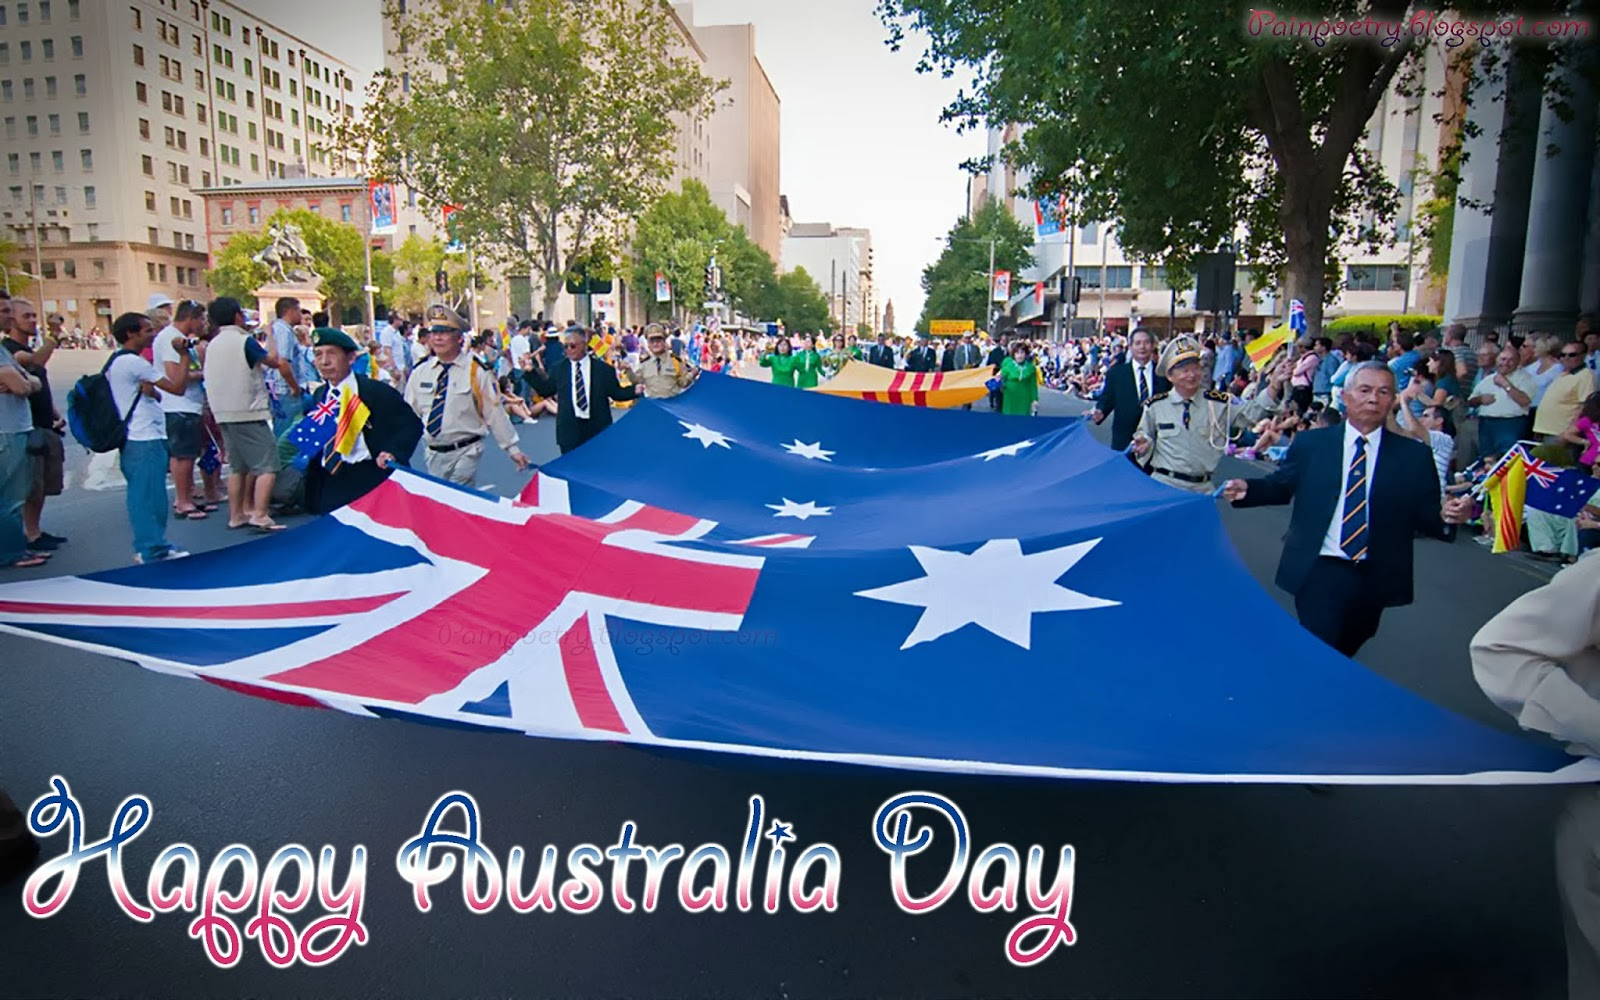 Happy-Australia-Day-The-Show-Of-Huge-Flag-Celebation-Of-26-January-Image-HD-Wide